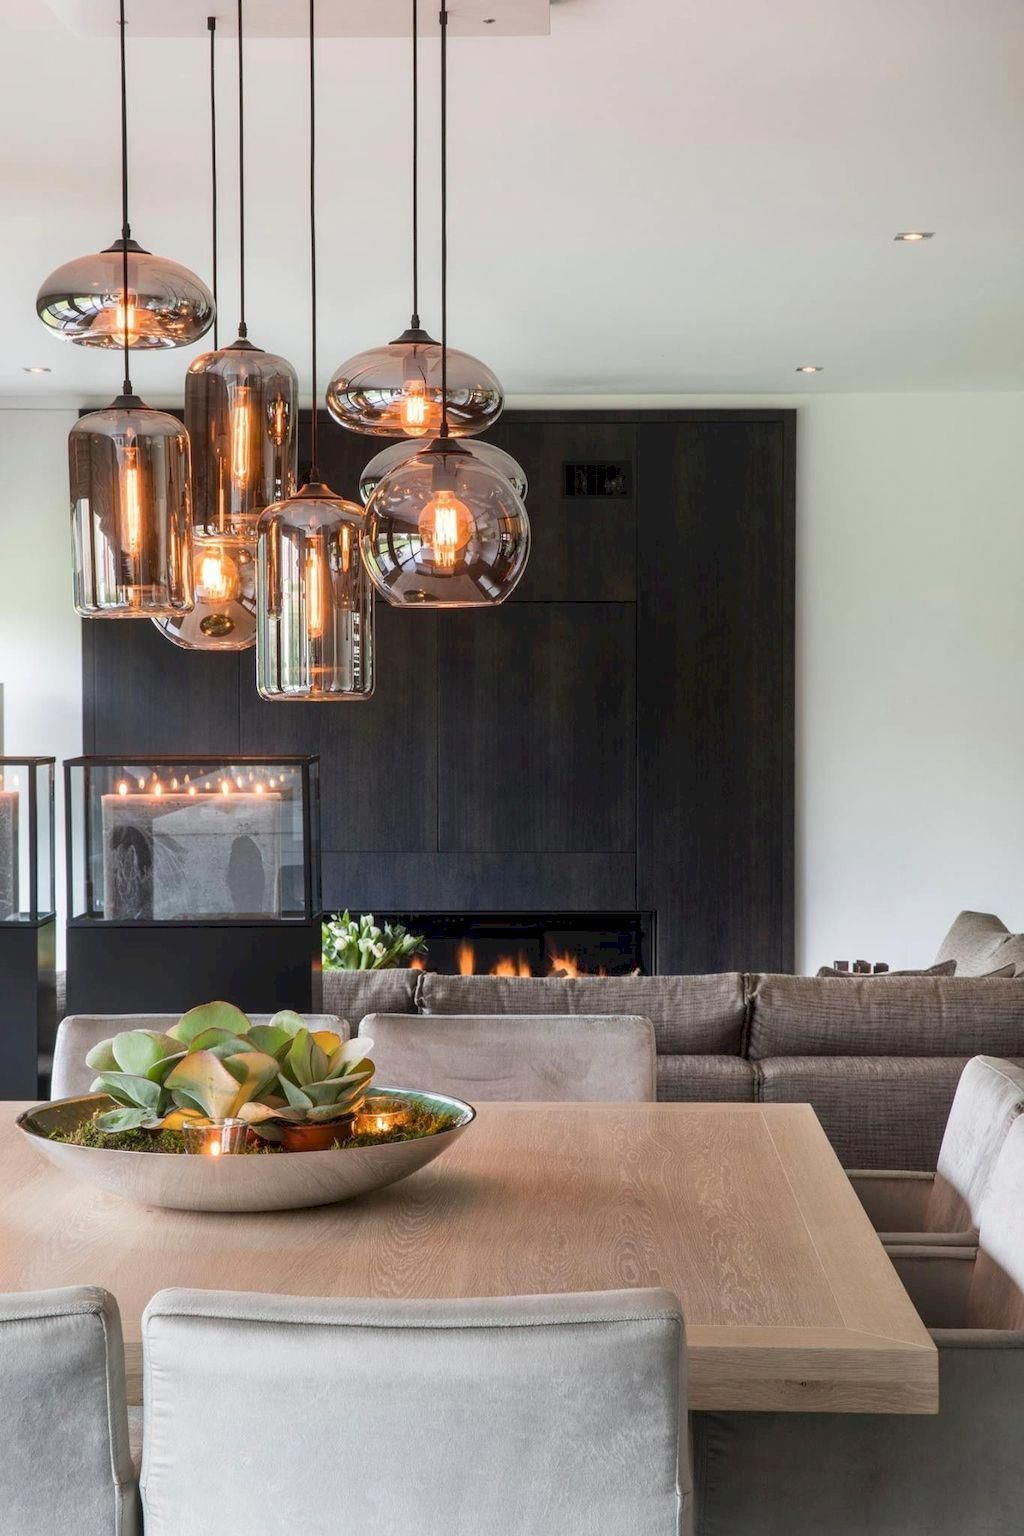 15+ Kitchen Lighting Ideas for Any Styles, Newest !! – Avionale Design